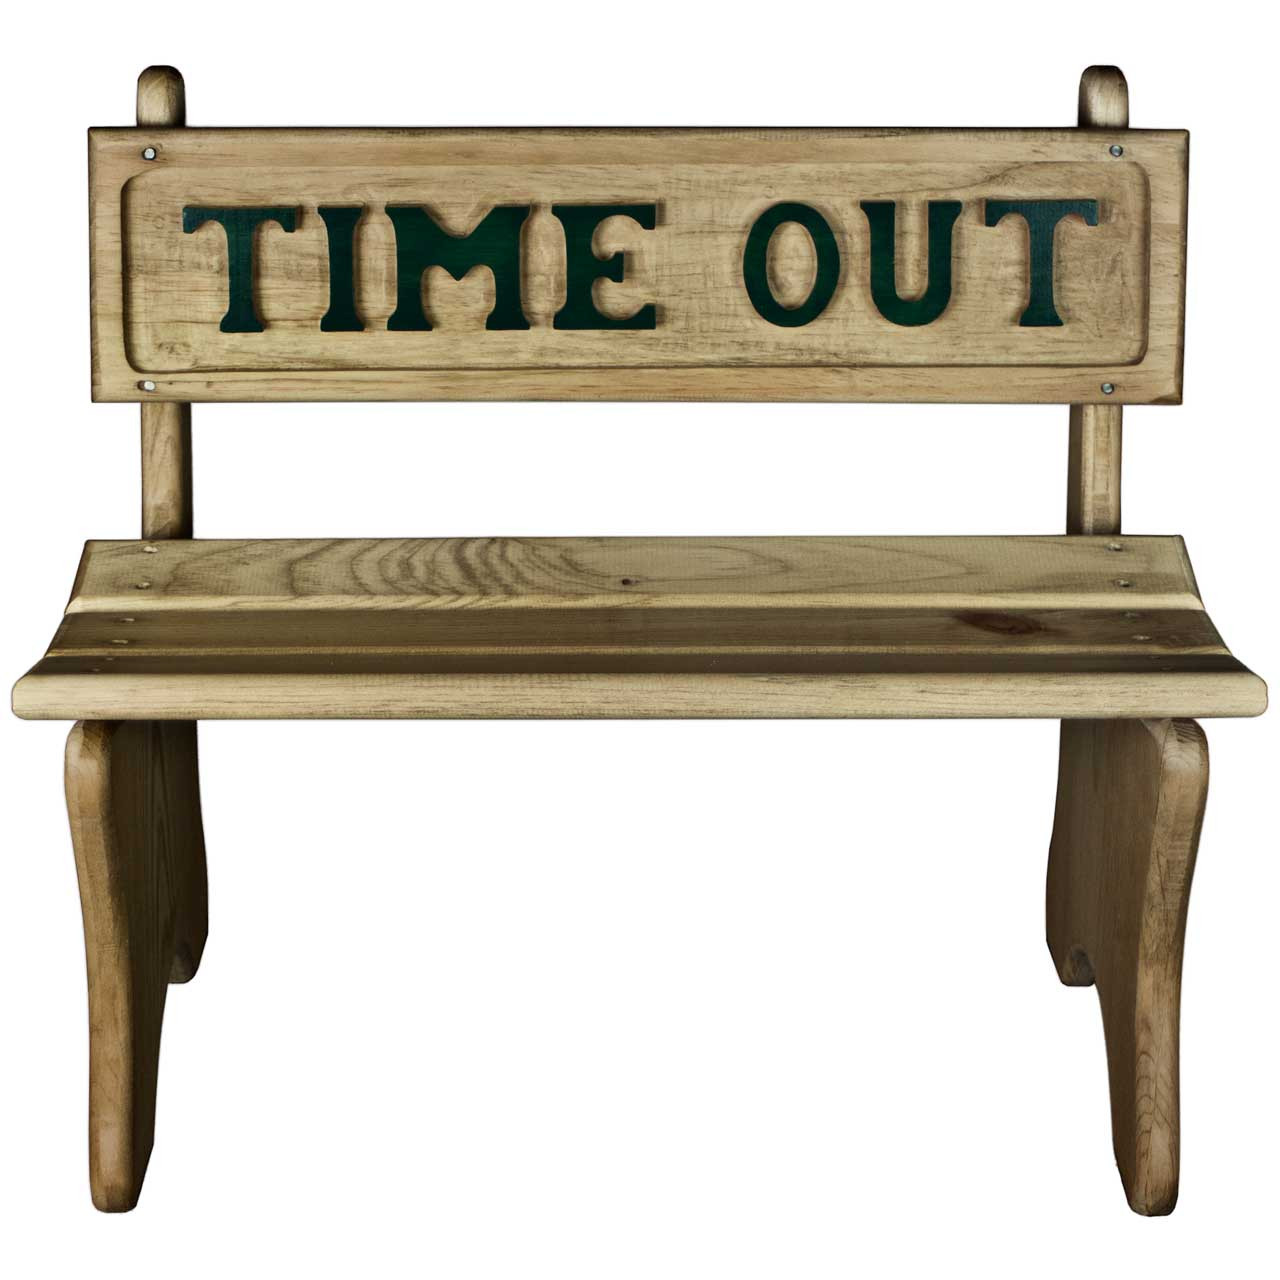 sc 1 st  DNL Woodworks & Timeout Bench | Wooden Time Out Chair - dnlwoodworks.com